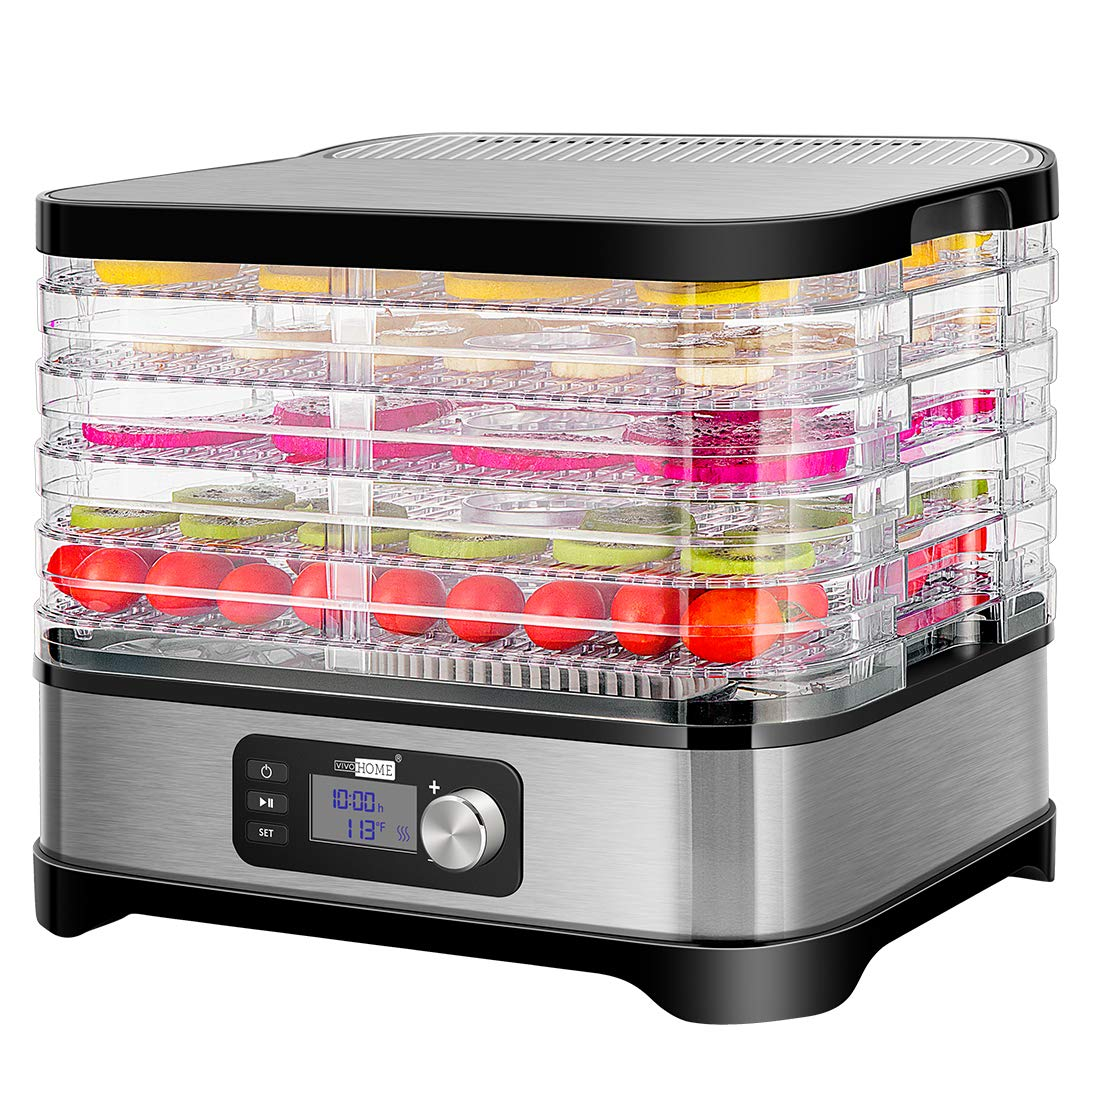 Find Crushed Ice Maker Amazon Suppliers Suppliers And Manufatures At Yoybuy Com